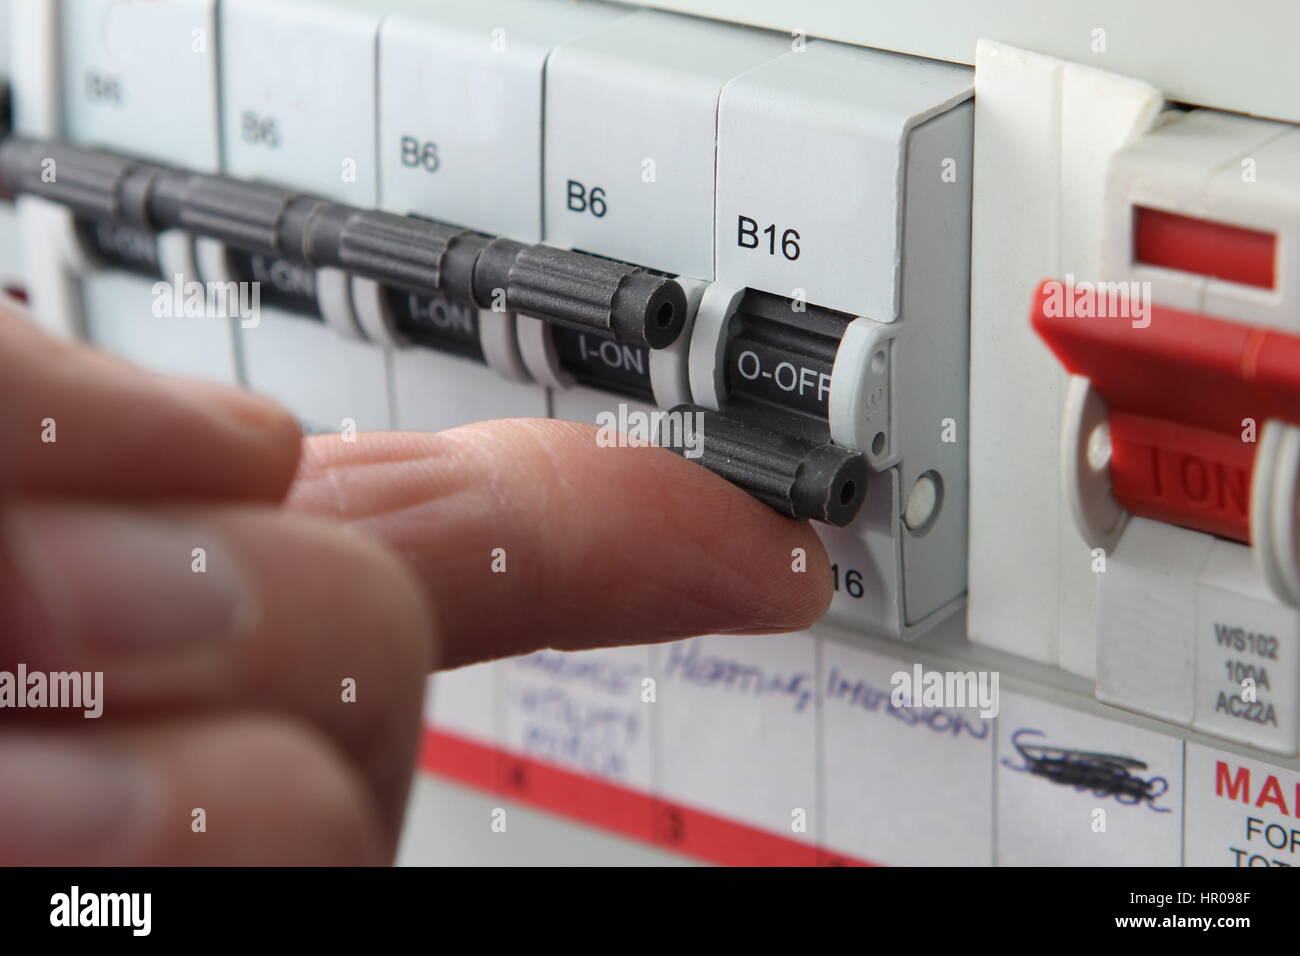 consumer unit box electrical fuse box old wire fuse type in a old style consumer unit electrical wire fuse box acircmiddot switching an mcb micro circuit breaker on a uk domestic electrical consumer unit or